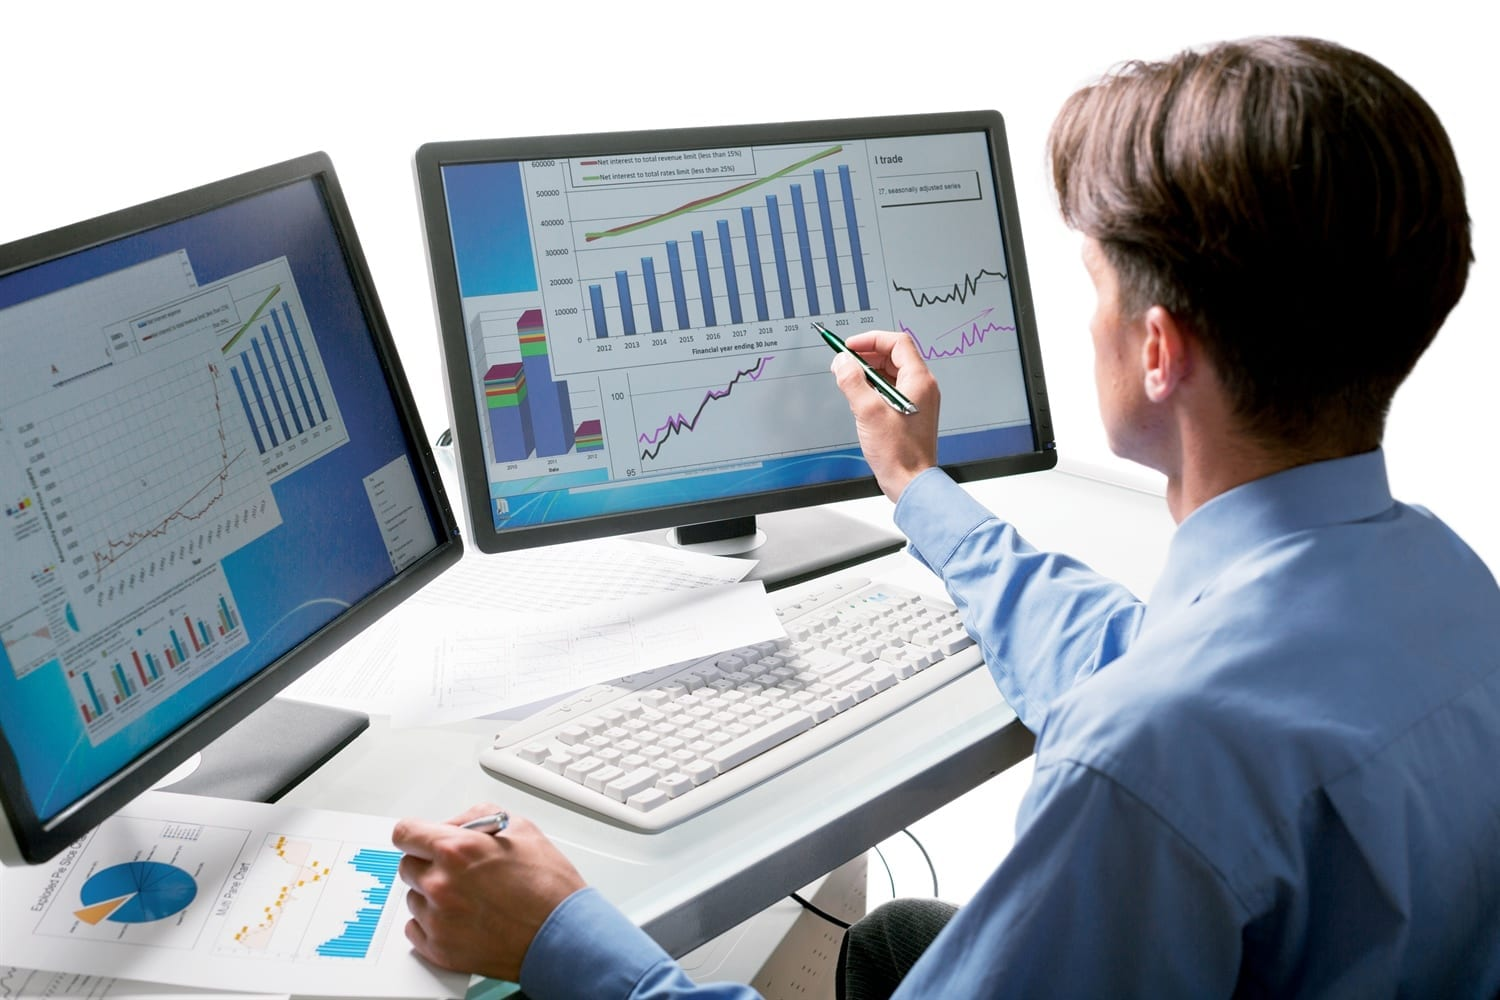 Man sat at desk looking at Legal and Finance details on screen